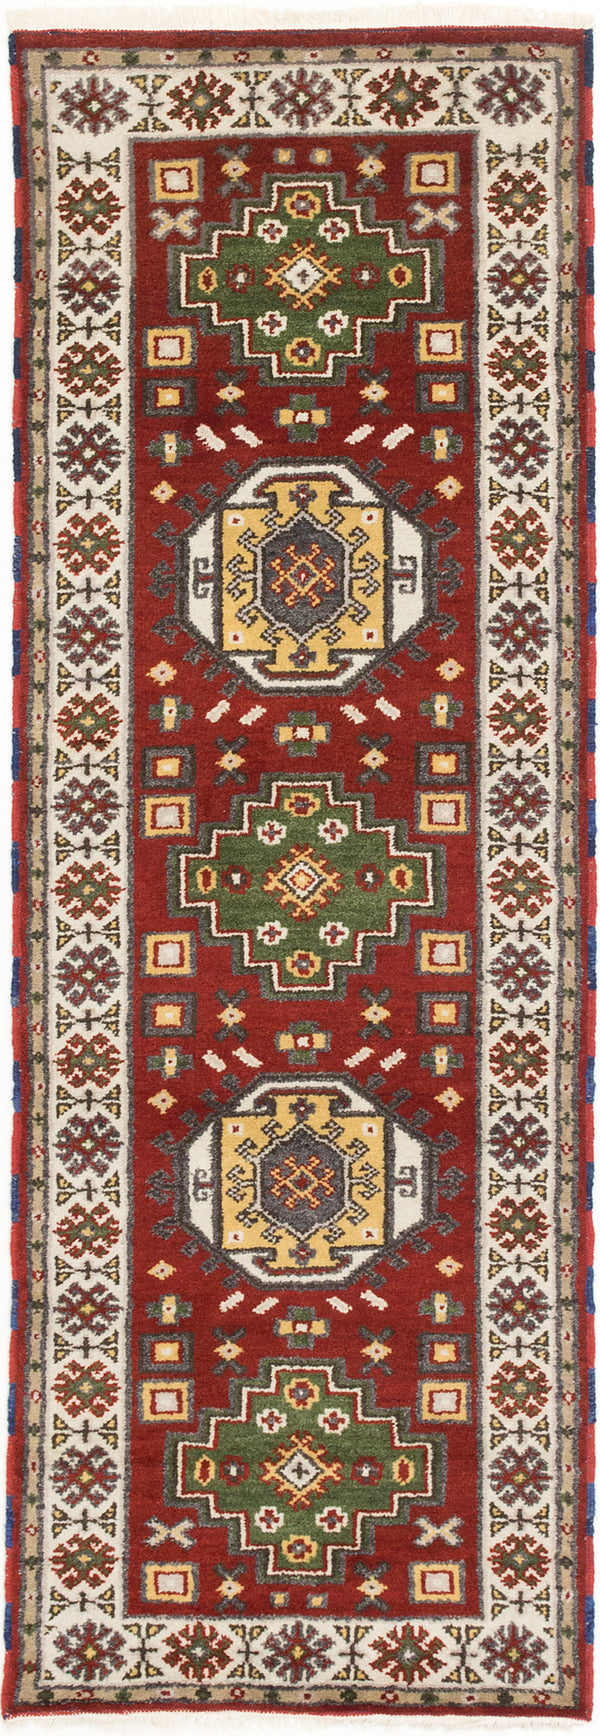 Hand-knotted Indian Geometric  Traditional Royal-Kazak Runner rug  Cream, Dark Red 2.9 x 8